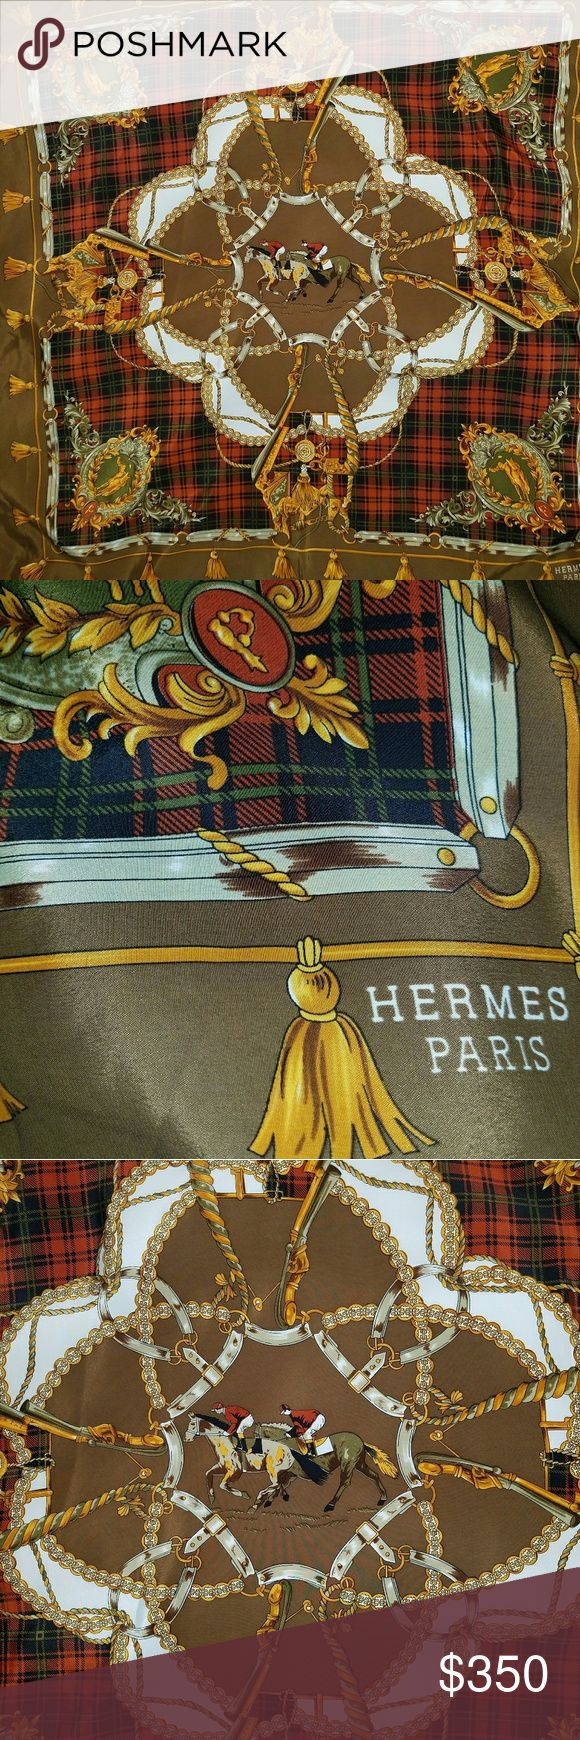 Vintage Hermes Hunt Silk Scarf This Hermes scarf is hard to find in this like new vintage condition. This scarf is a true classic. Please ask questions. Hermes Accessories Scarves & Wraps